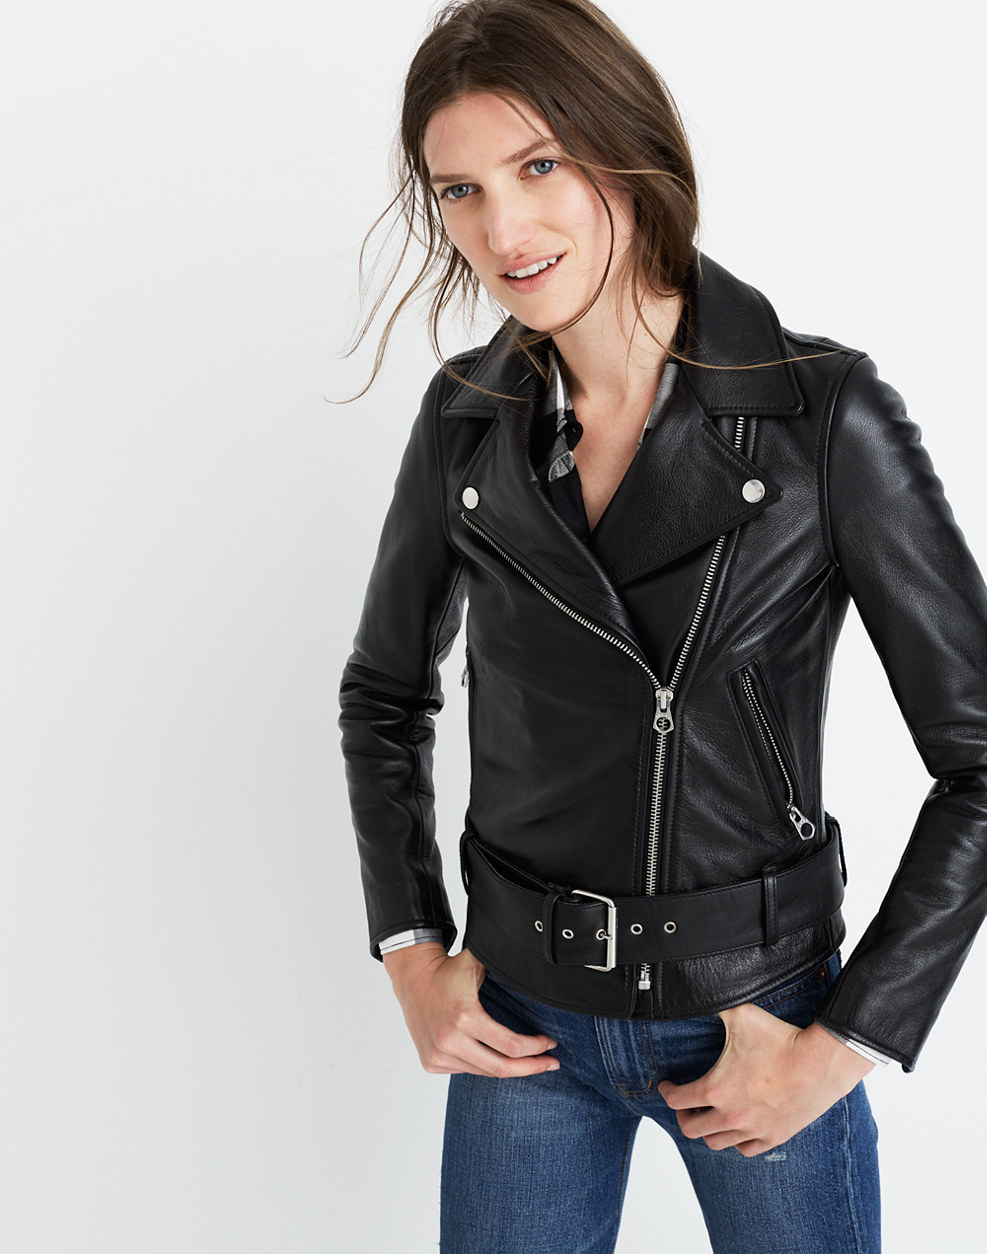 Ultimate Leather Motorcycle Jacket : leather jackets | Madewell